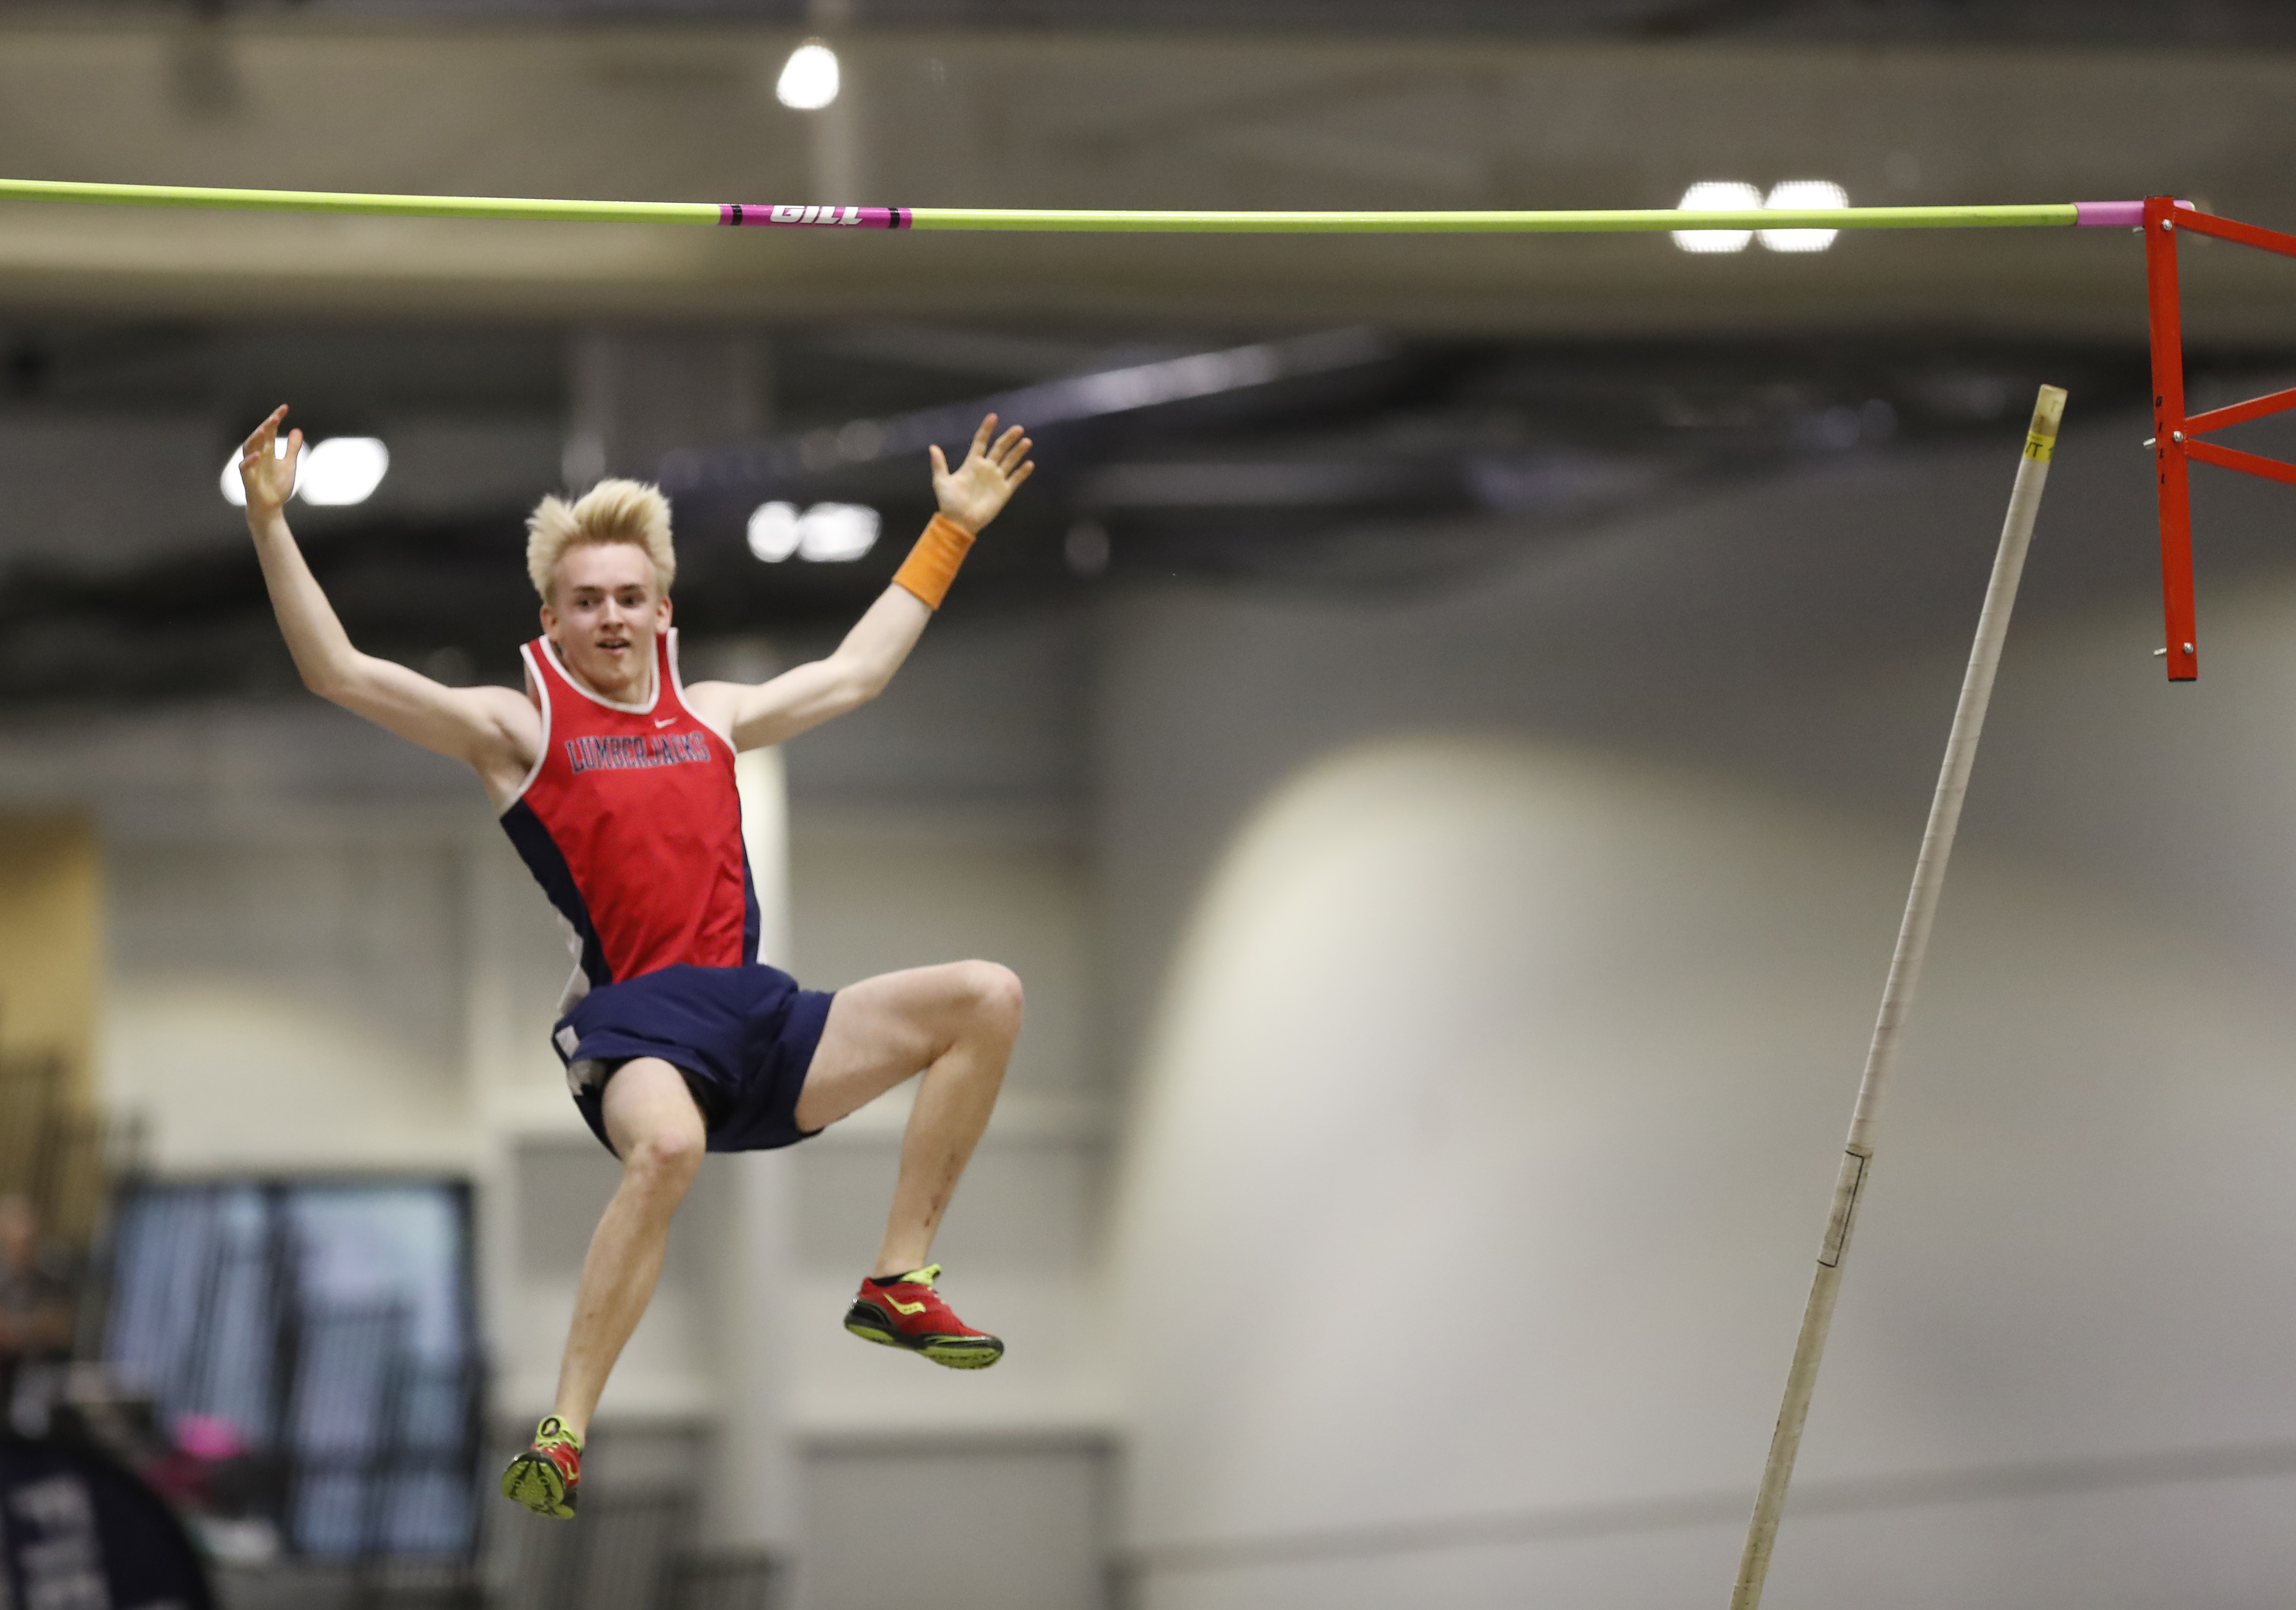 North Tonawanda's Anton Kunnas won the pole vault title at the Section VI track and field championships at Houghton College on Feb. 25. (Harry Scull Jr./Buffalo News)